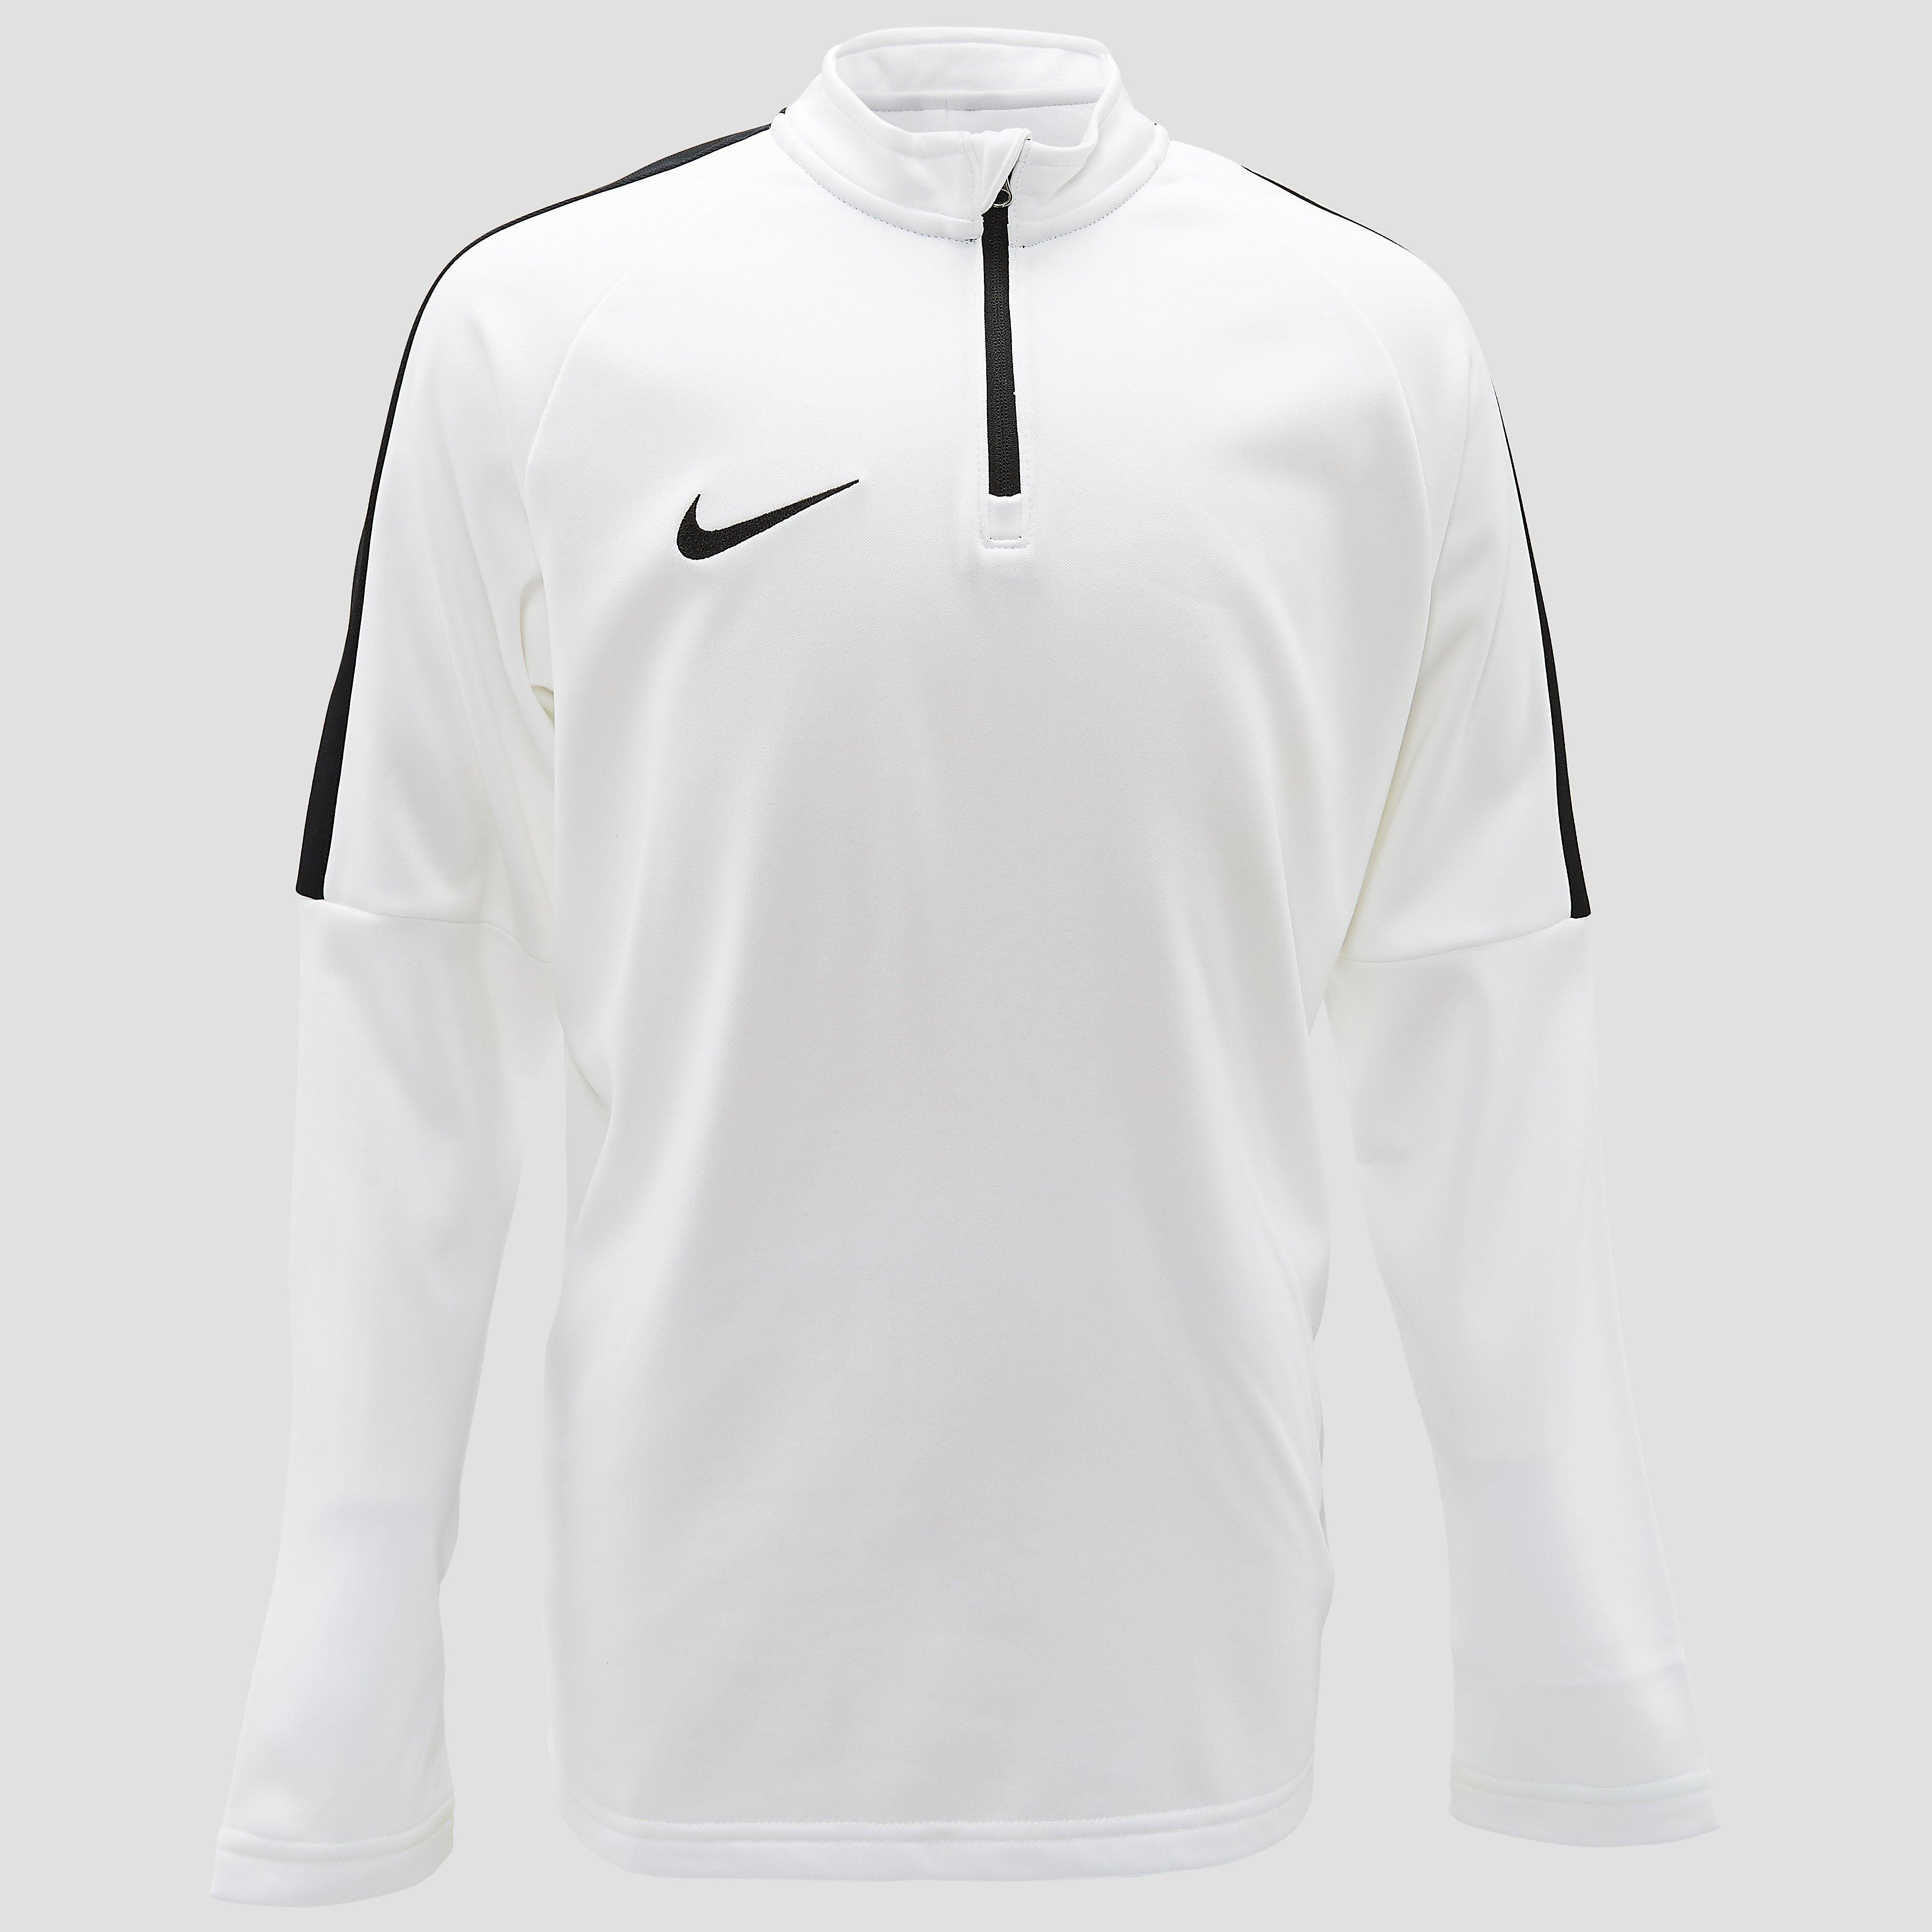 NIKE DRY ACADEMY DRIL VOETBALSHIRT WIT KINDEREN